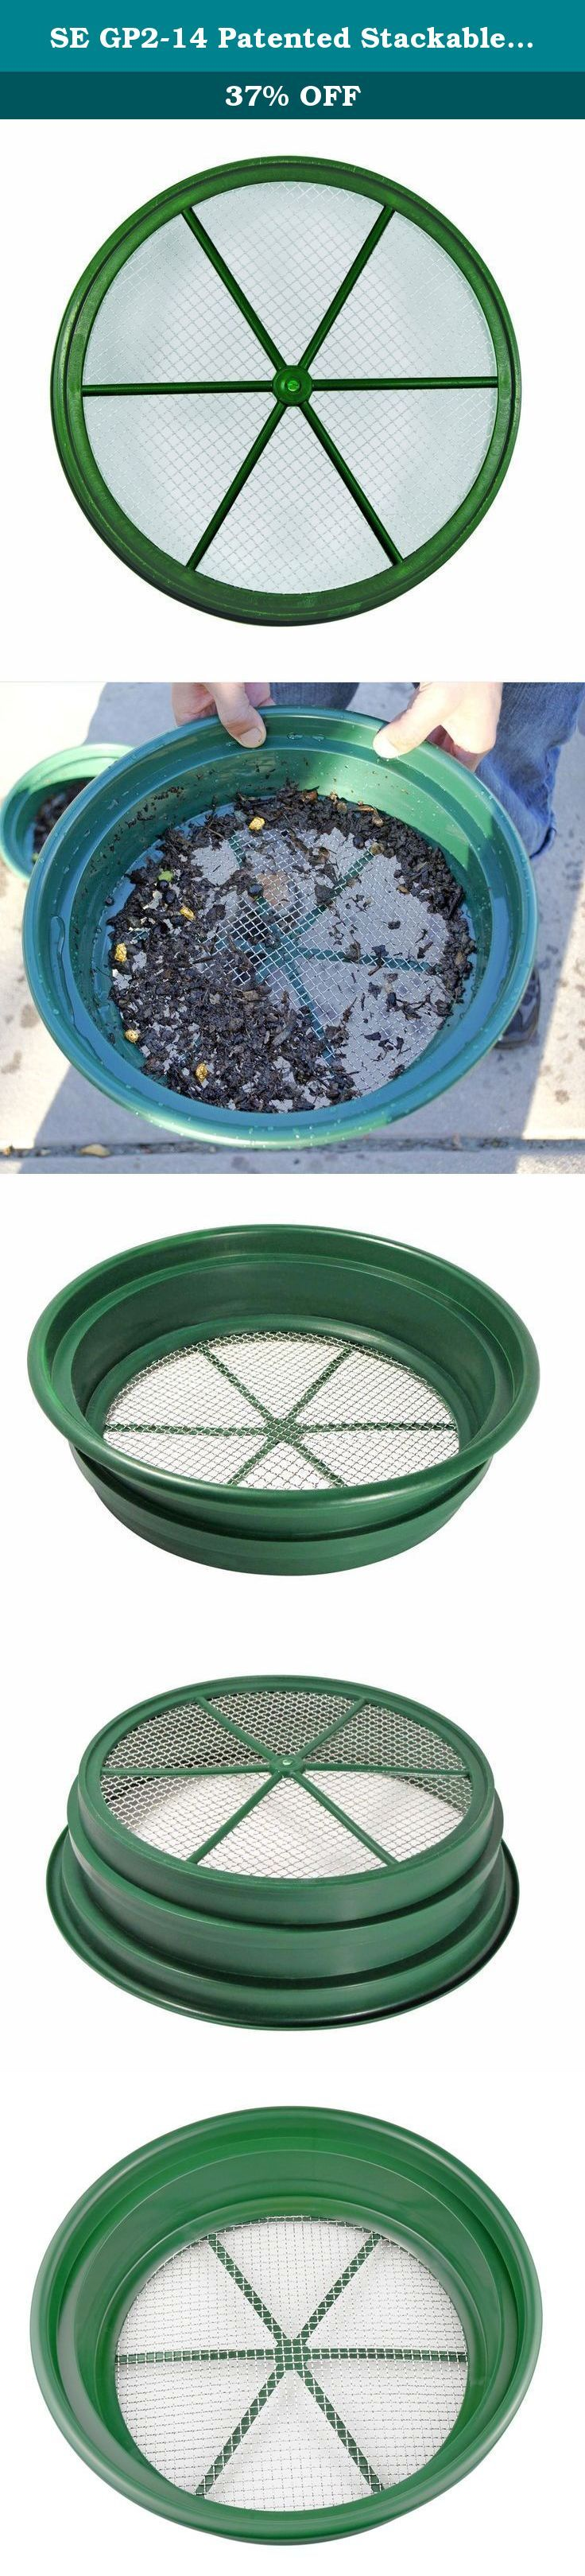 "SE GP2-14 Patented Stackable 13-1/4"" Sifting Pan, 1/4"" Mesh Screen. Use this Patented Stackable 13-¼"" Sifting Pan with ¼"" Mesh Size at home, at work, or on your next adventure! Why use our Sifting Pans (AKA classifiers/sieves)? • Classification is the most important step in gold recovery. • Screen off large, worthless gravel and rock. • Size your material to the proper dimensions of the gold you are expecting to recover. • Our high quality stainless steel wire mesh is both accurate and..."